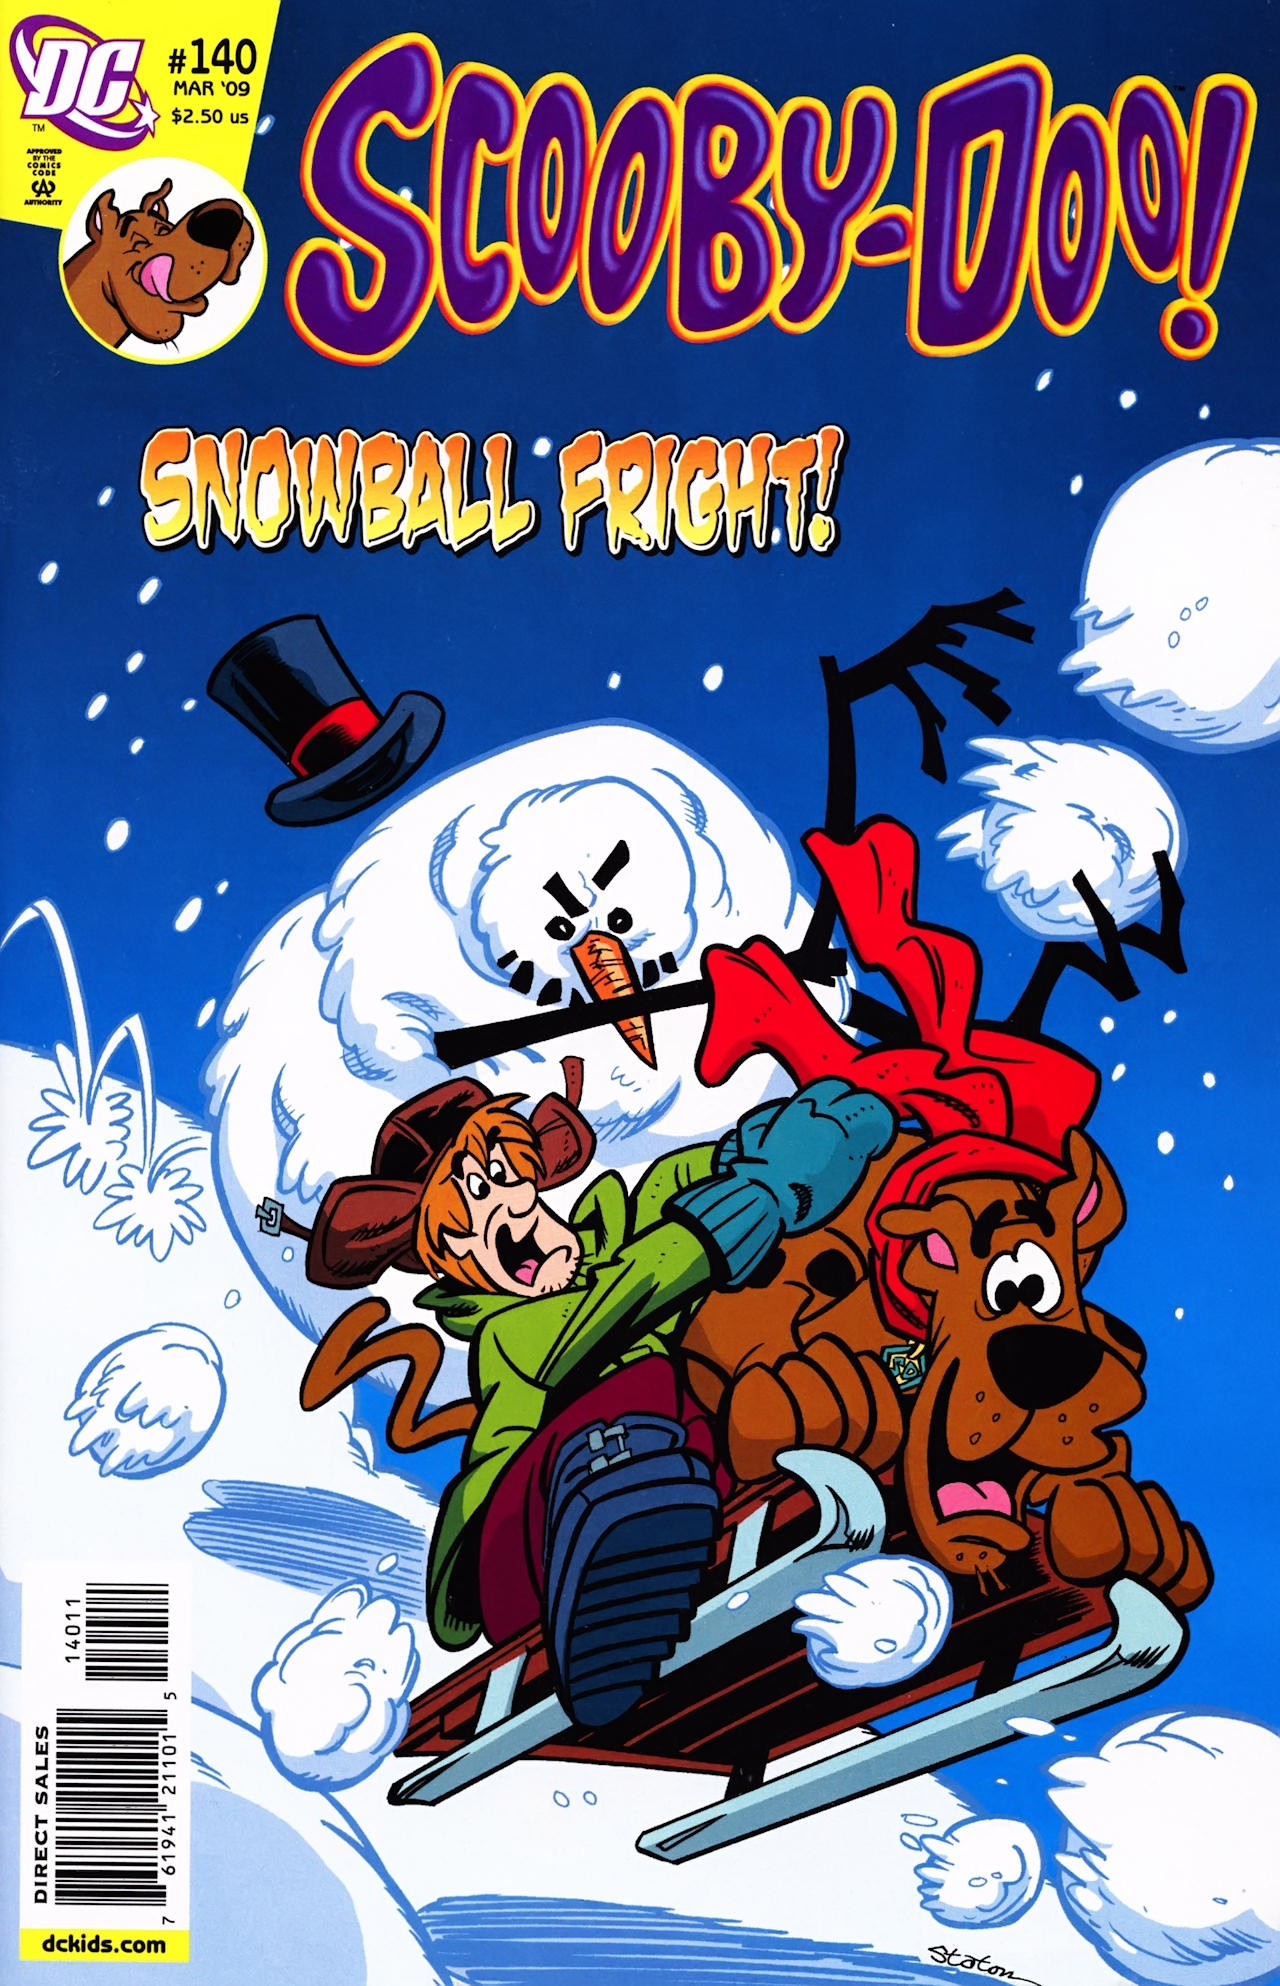 Read online Scooby-Doo (1997) comic -  Issue #140 - 1